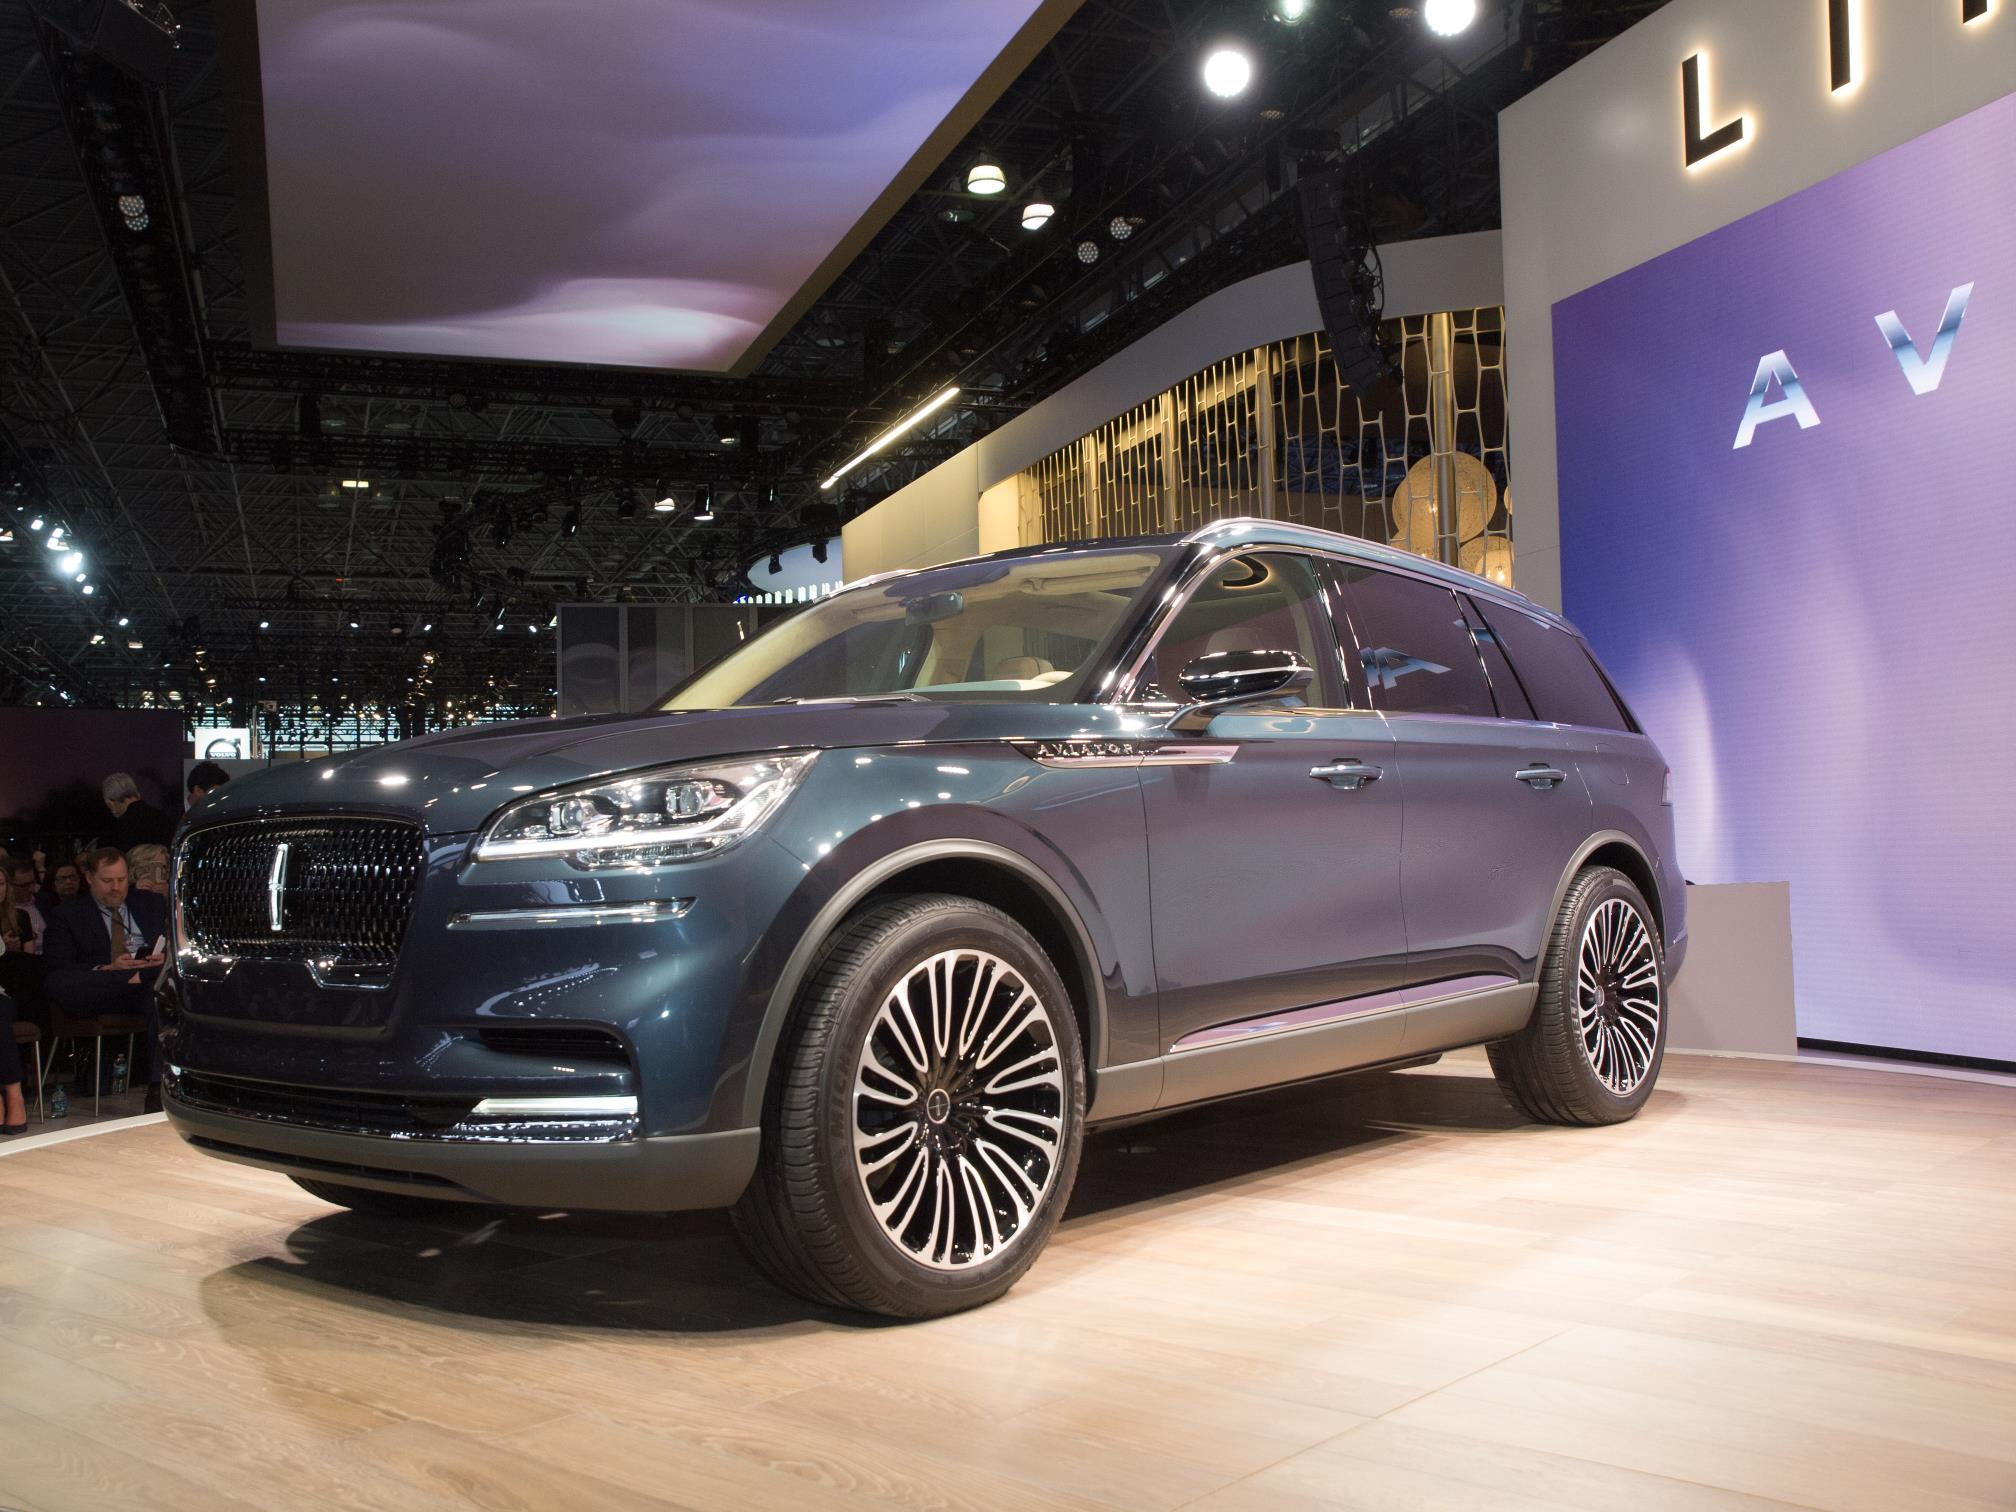 Production Lincoln Aviator Will Look Just Like the Concept ...